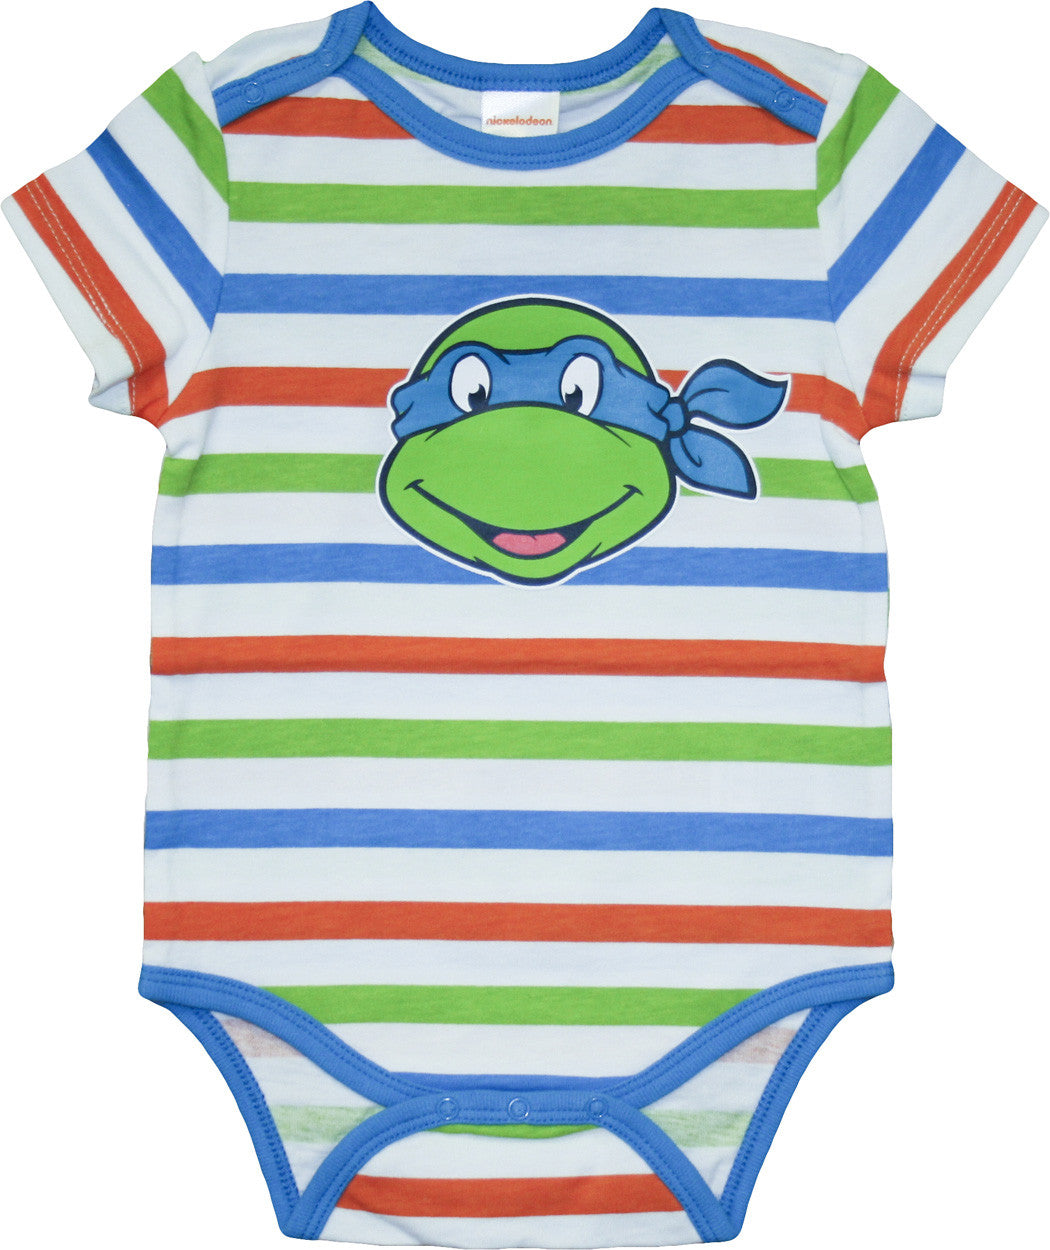 Teenage Mutant Ninja Turtles Retro Striped onesie